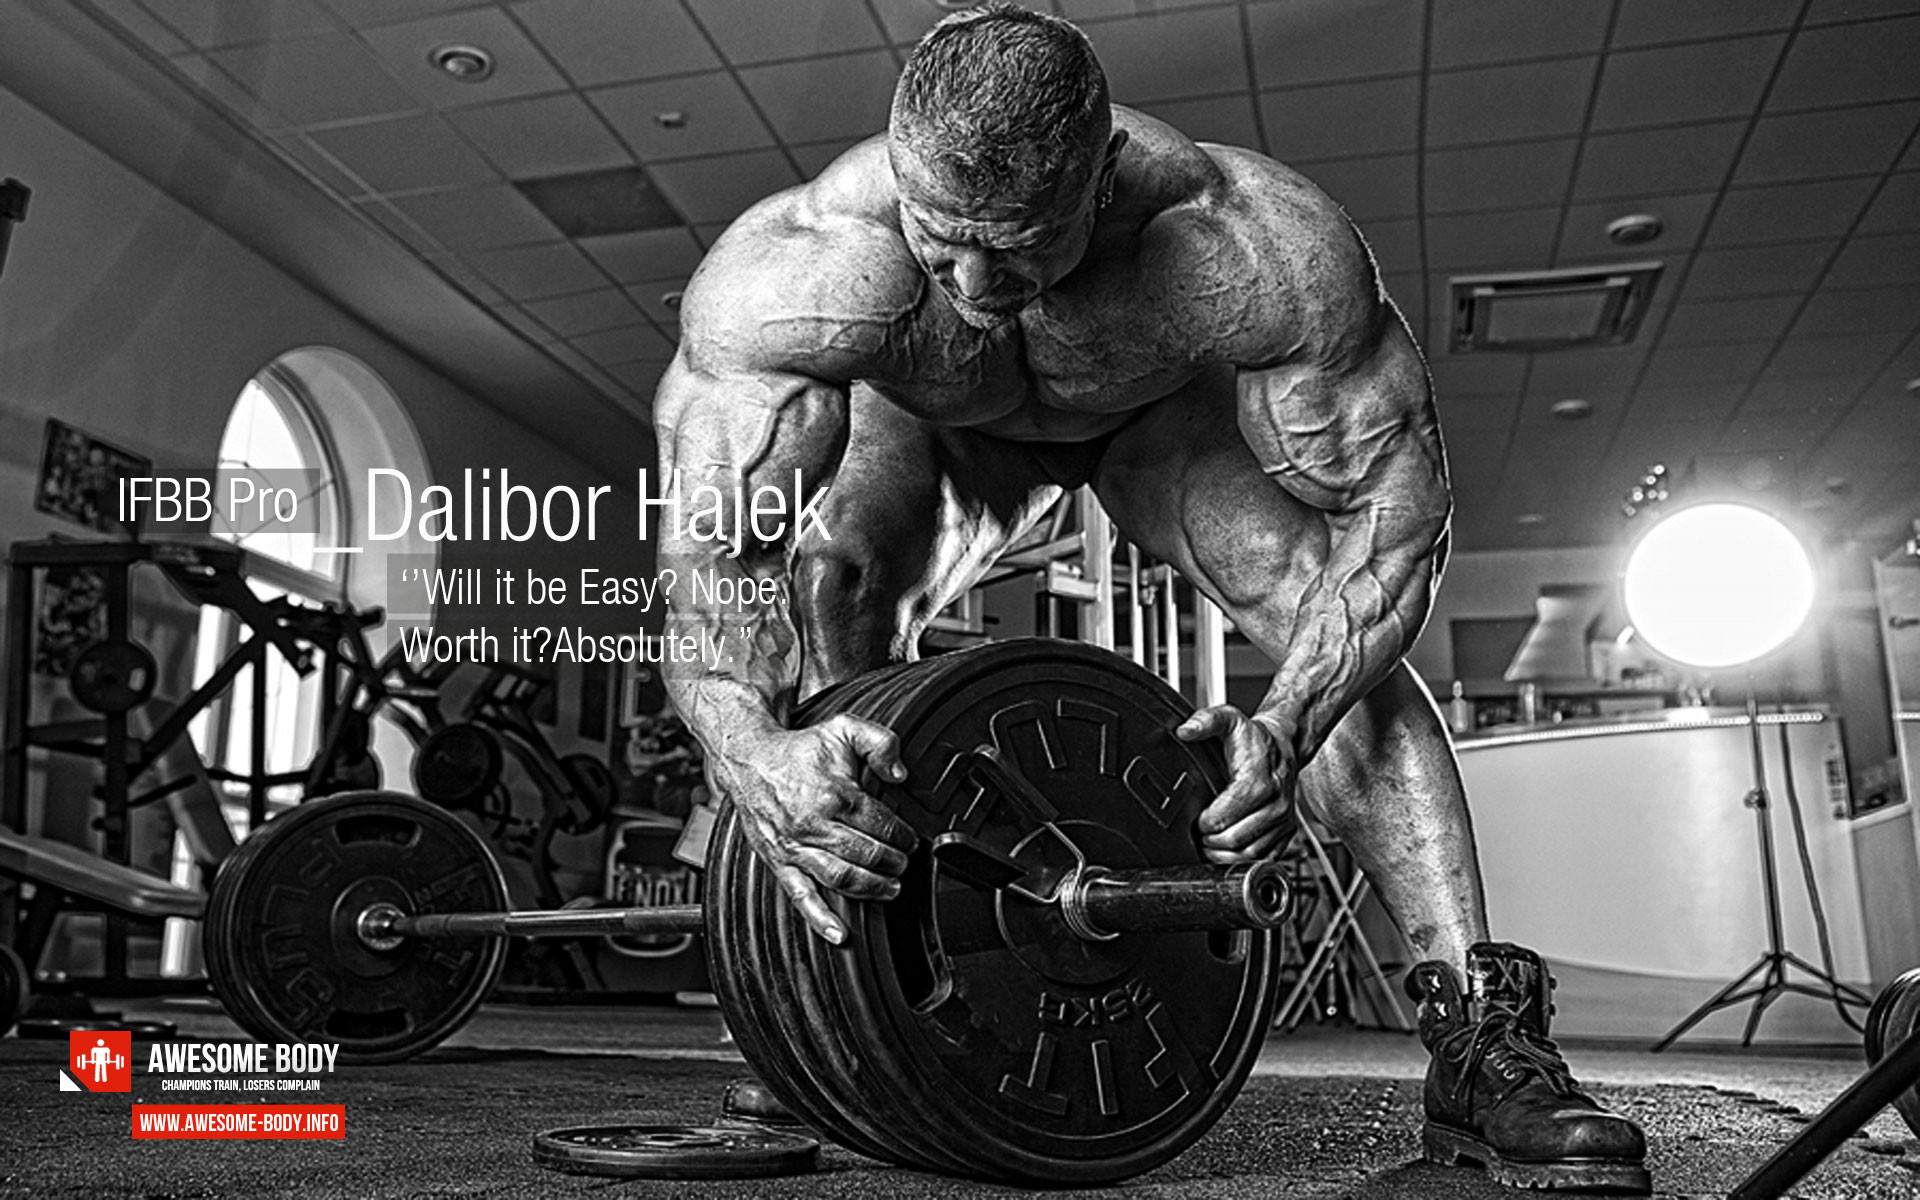 1920x1200 HD Wallpapers - - Dalibor Hajek - Bodybuilding News & Tips - Health &  Nutrition -